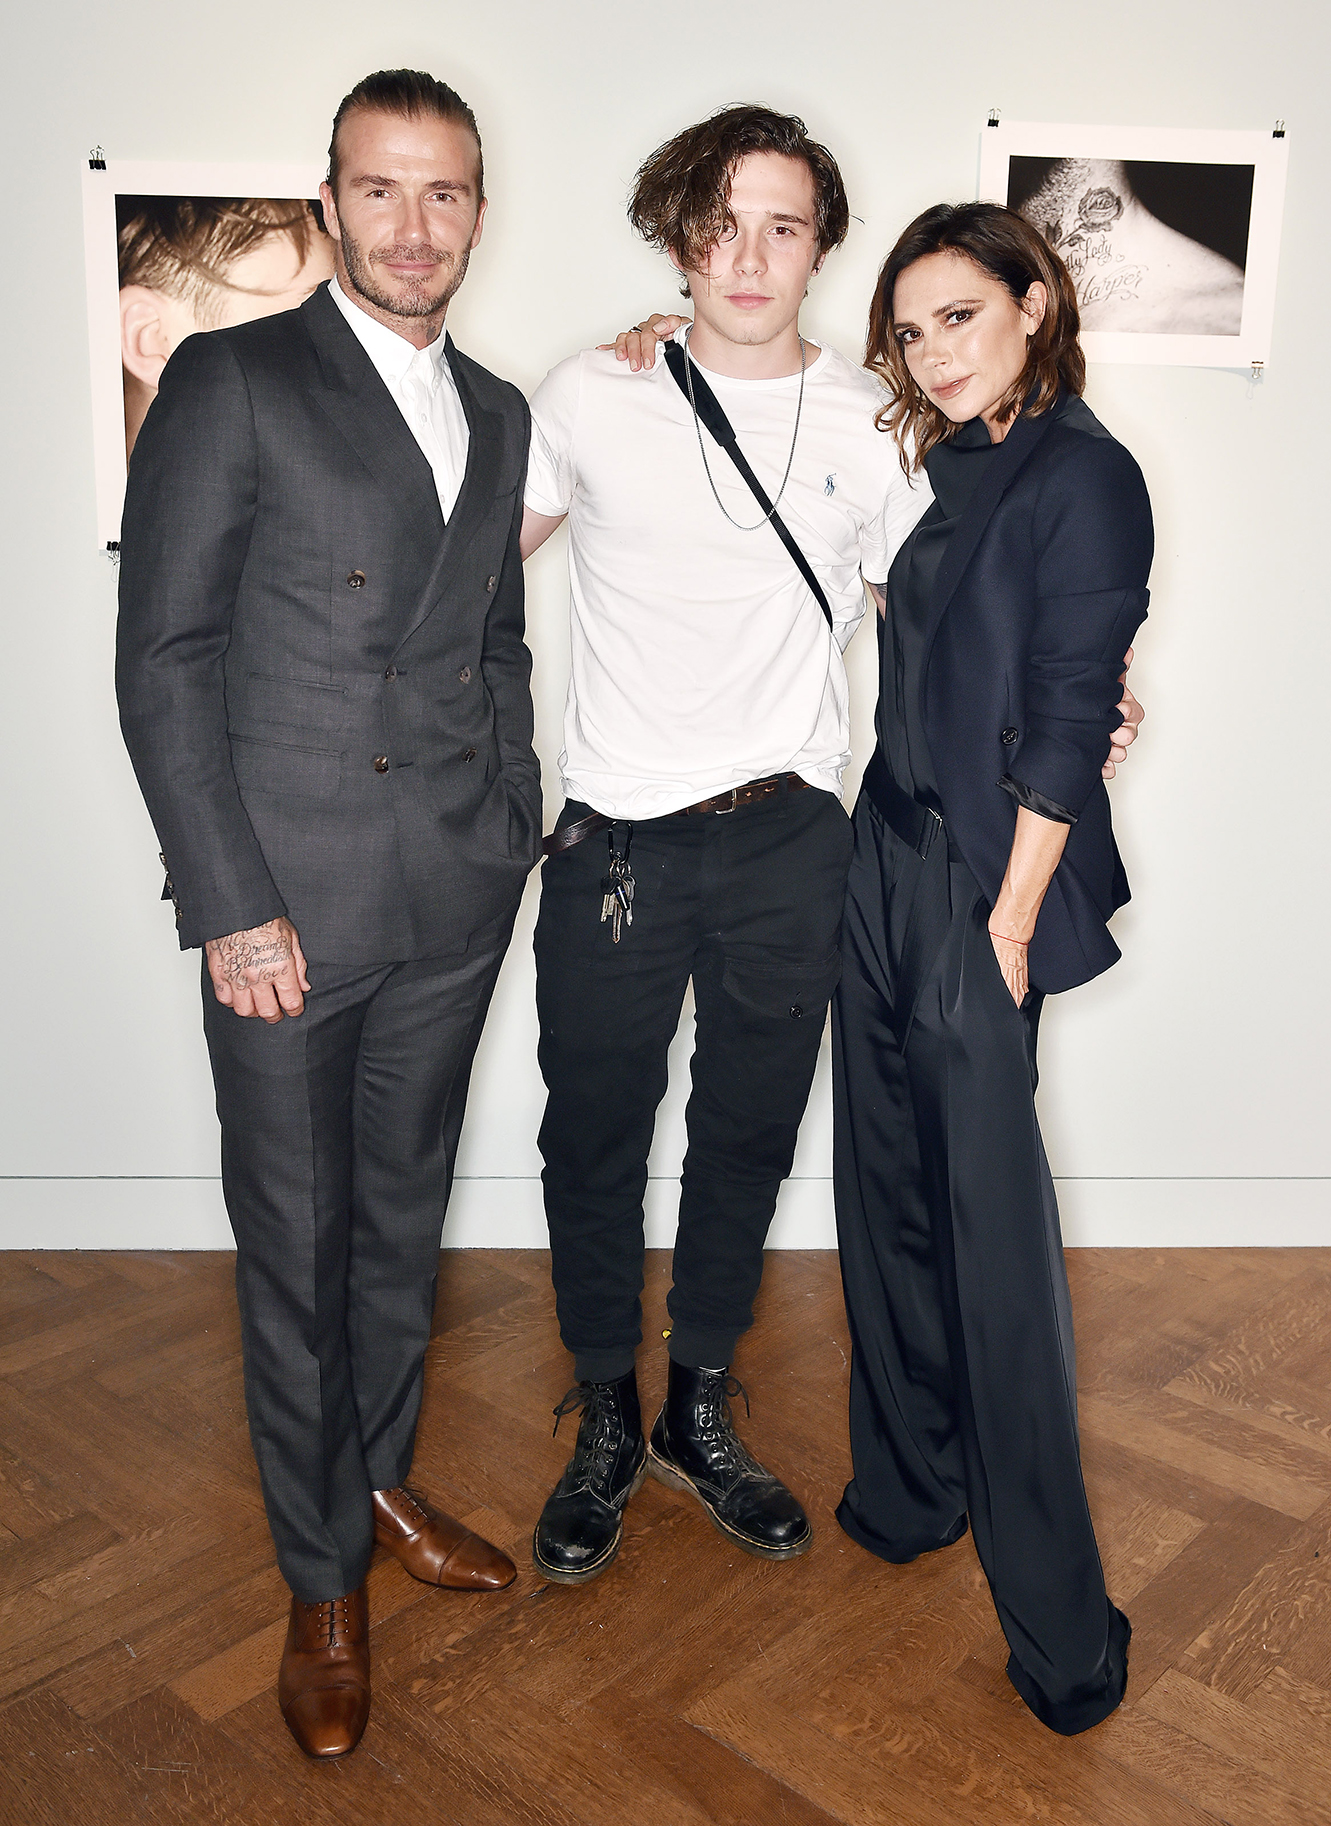 Brooklyn Beckham: 'What I See' exhibition and book launch at Christie's in partnership with Polo Ralph Lauren, New Bond Street, London, UK - 27 Jun 2017